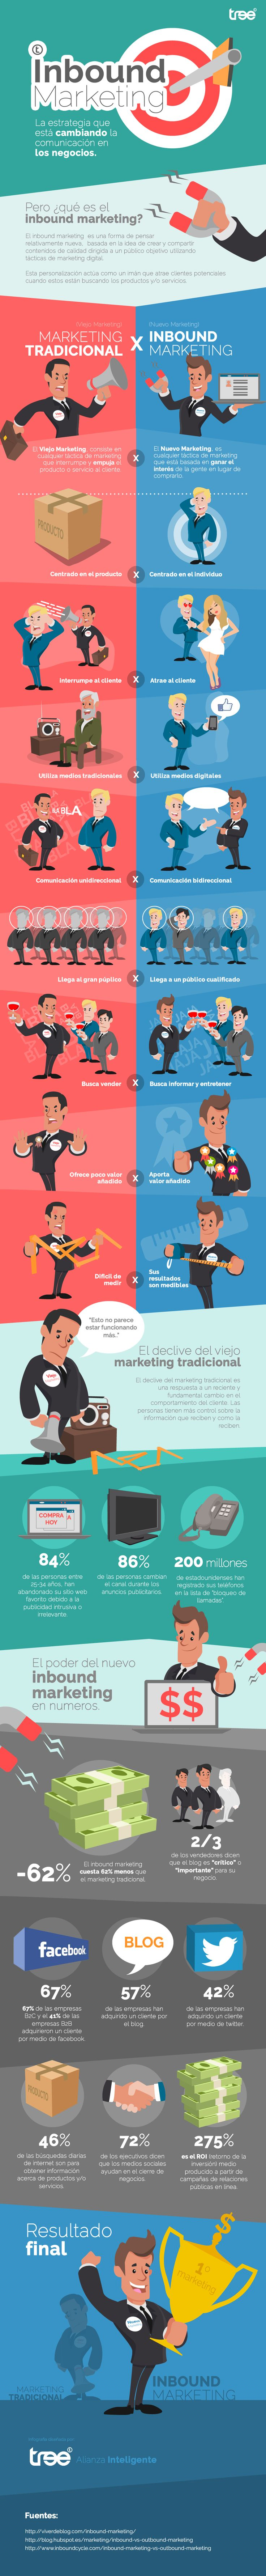 Inbound Marketing vs Marketing tradicional #infografia cc @anlsm30